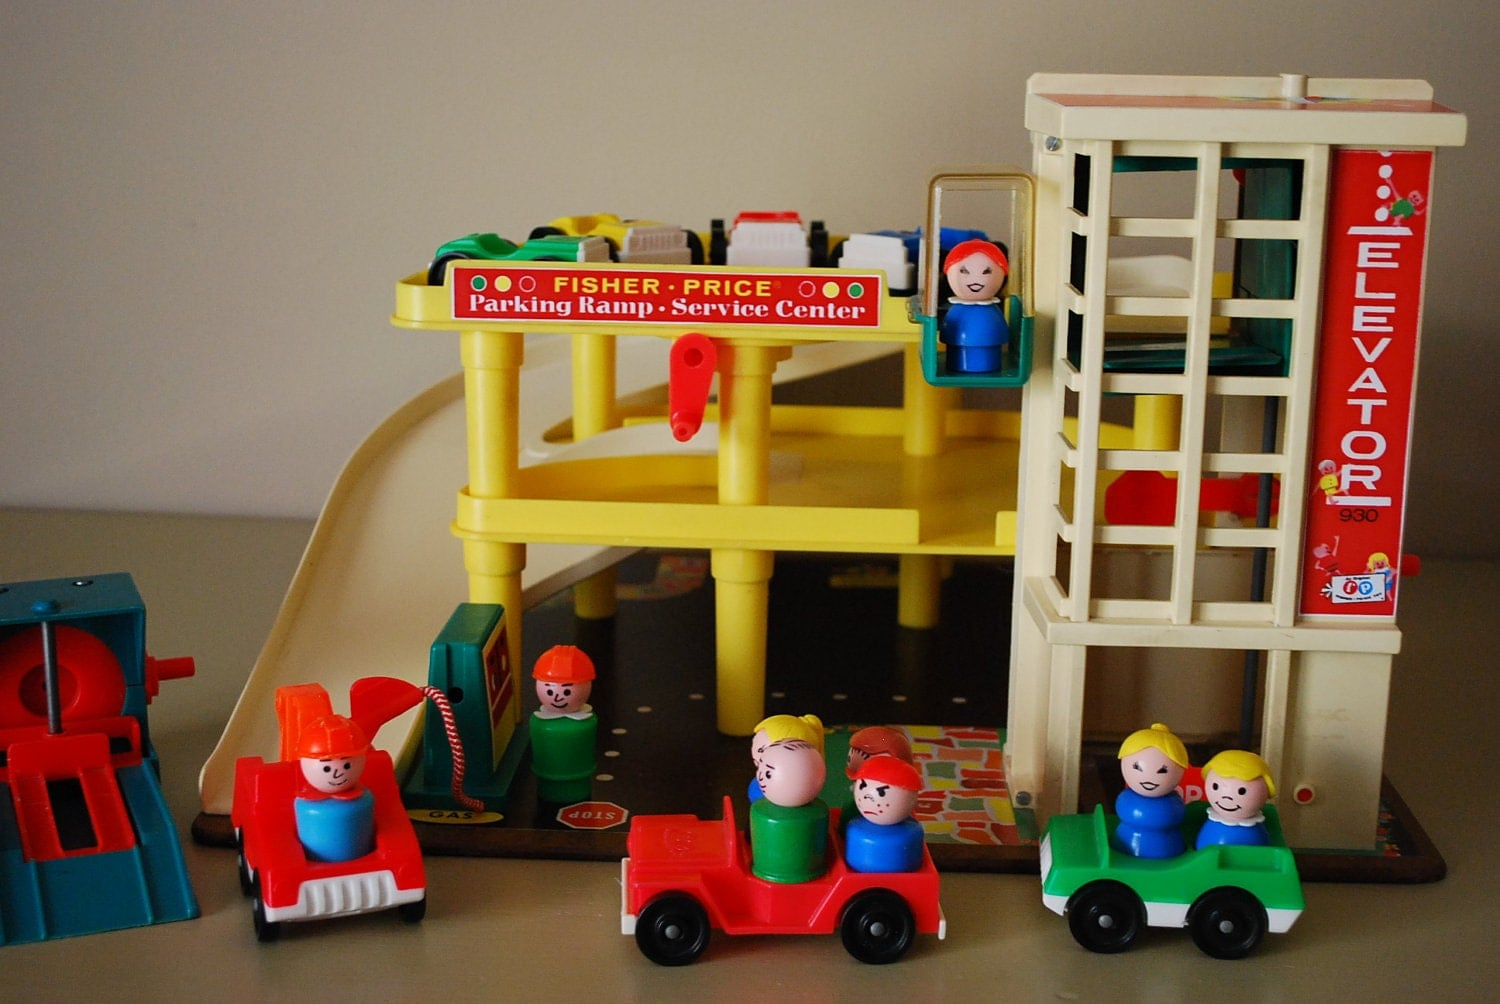 Garage Fisher Price Make Your Own Beautiful  HD Wallpapers, Images Over 1000+ [ralydesign.ml]